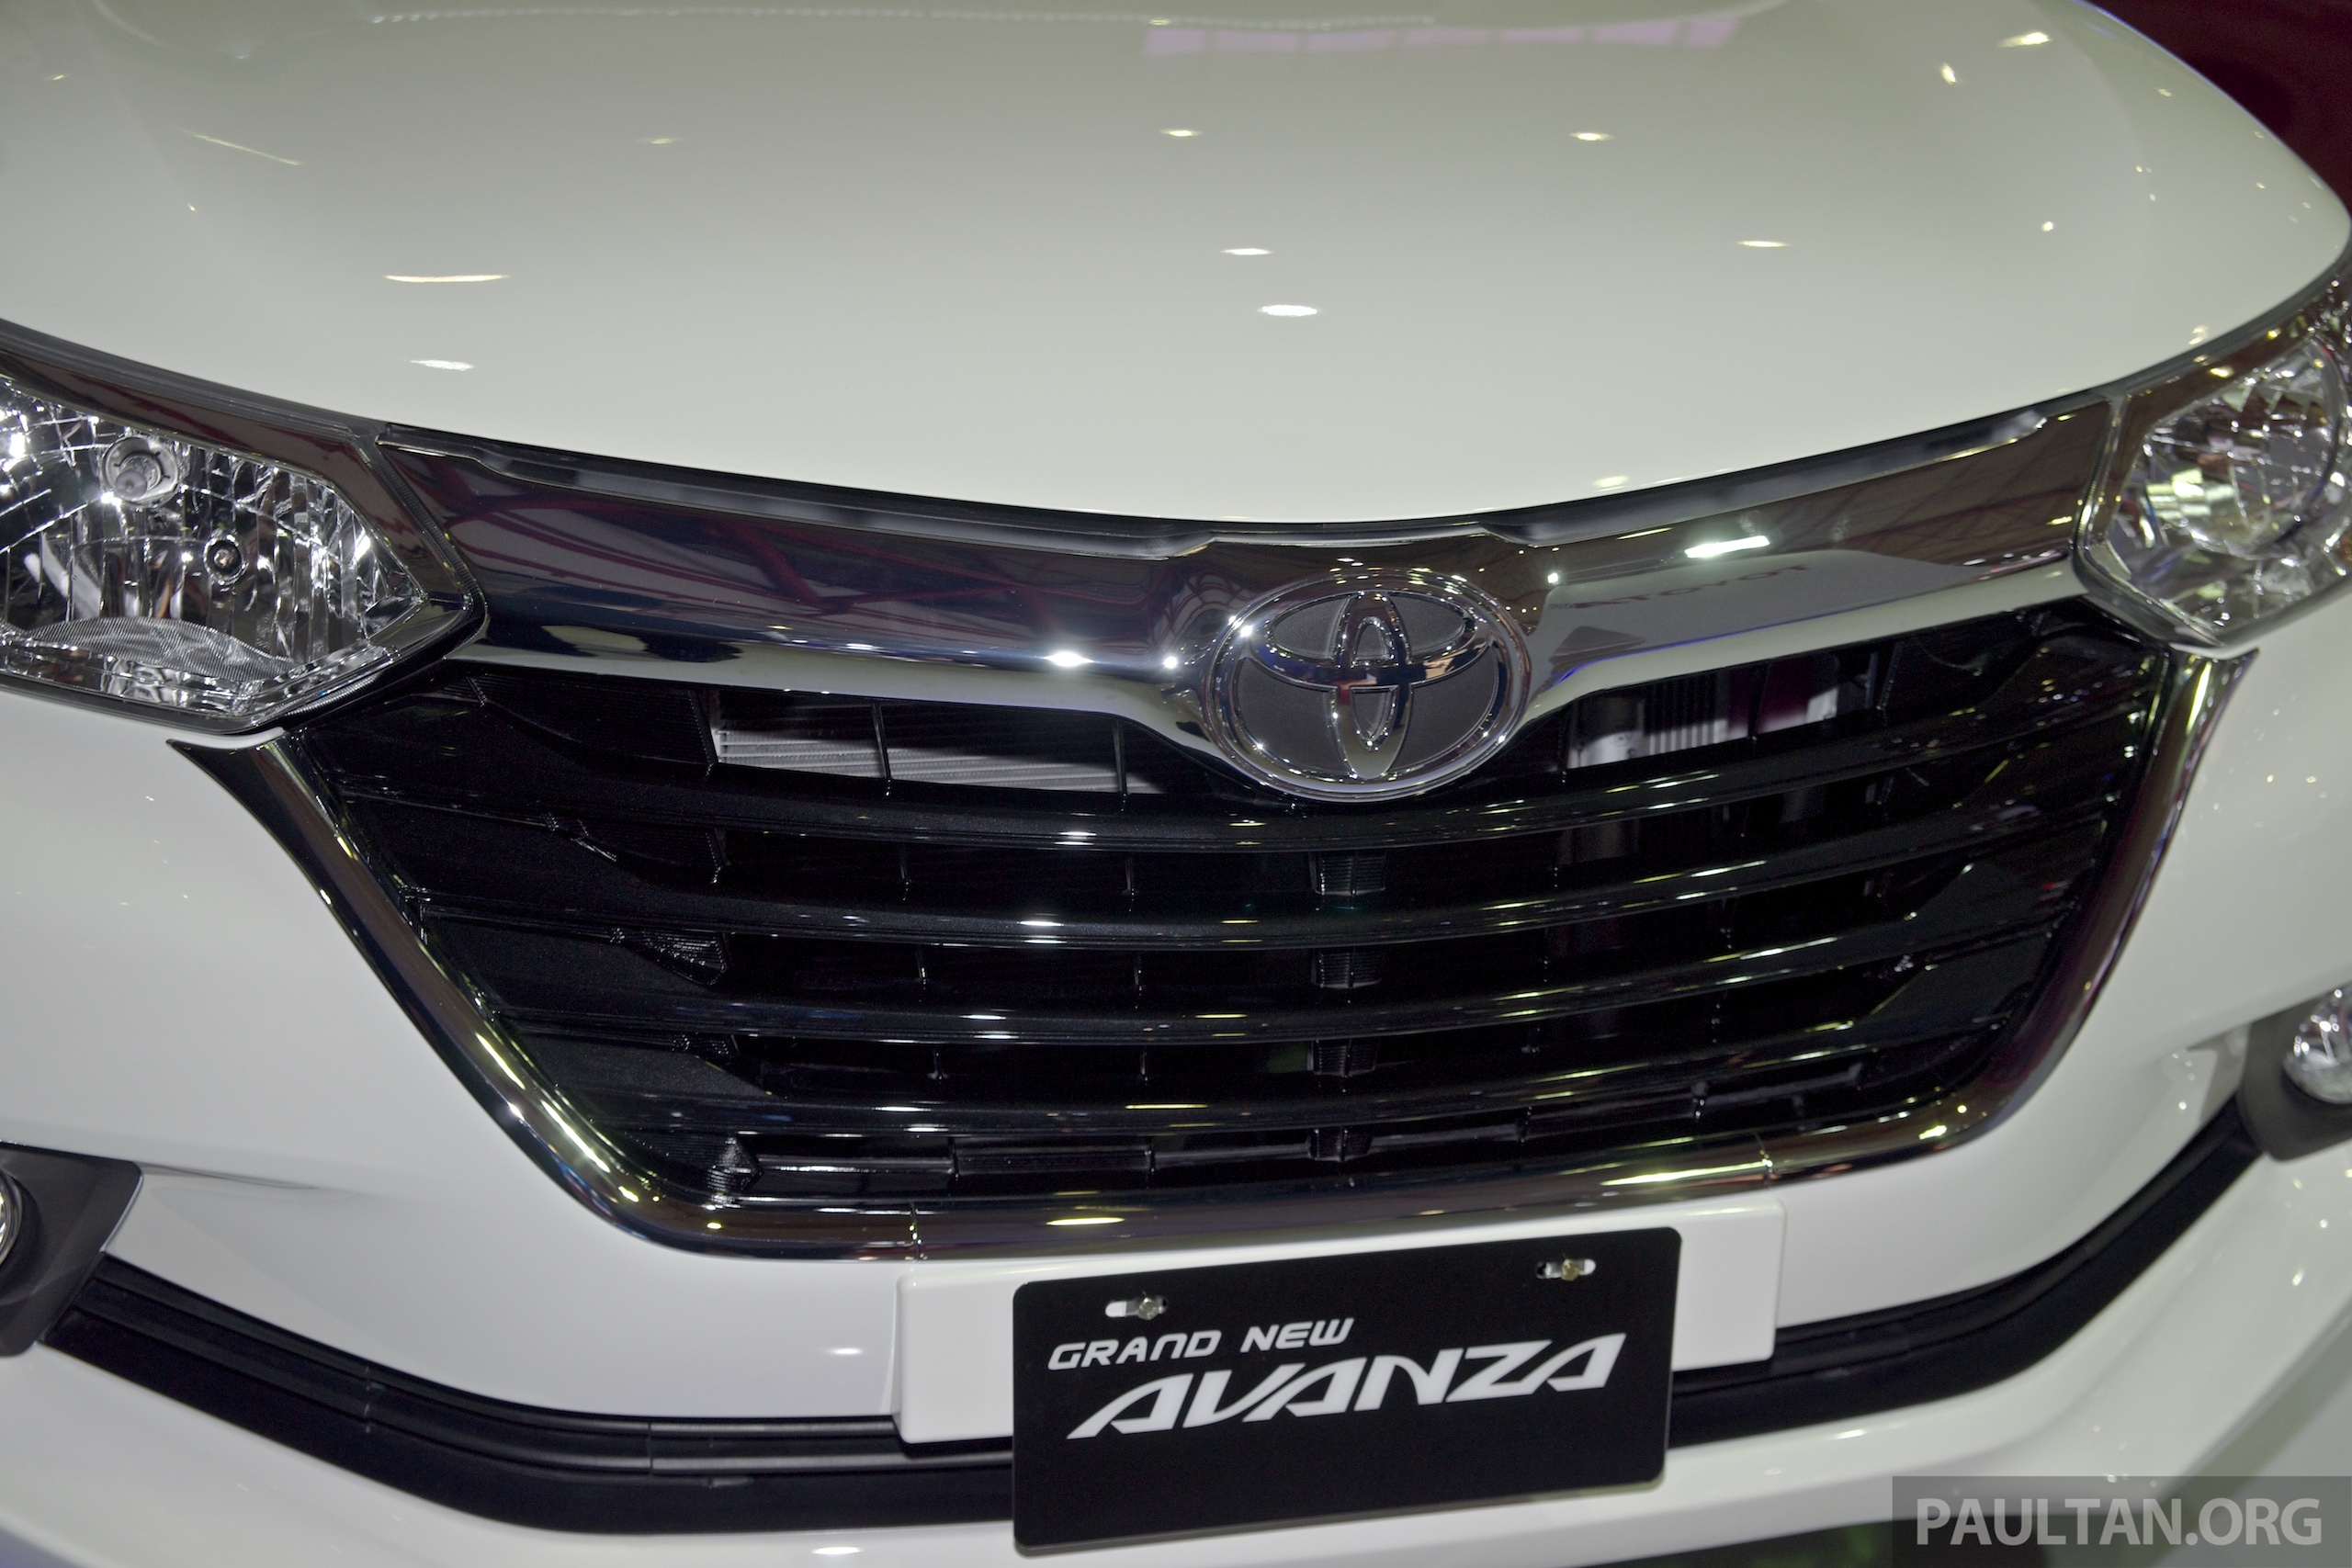 harga grand new veloz 1.3 2015 suspensi avanza keras iims toyota facelift from rm54k the on other hand takes a more vios esque aesthetic upper grille is slimmer here bumper real estate instead taken over by huge